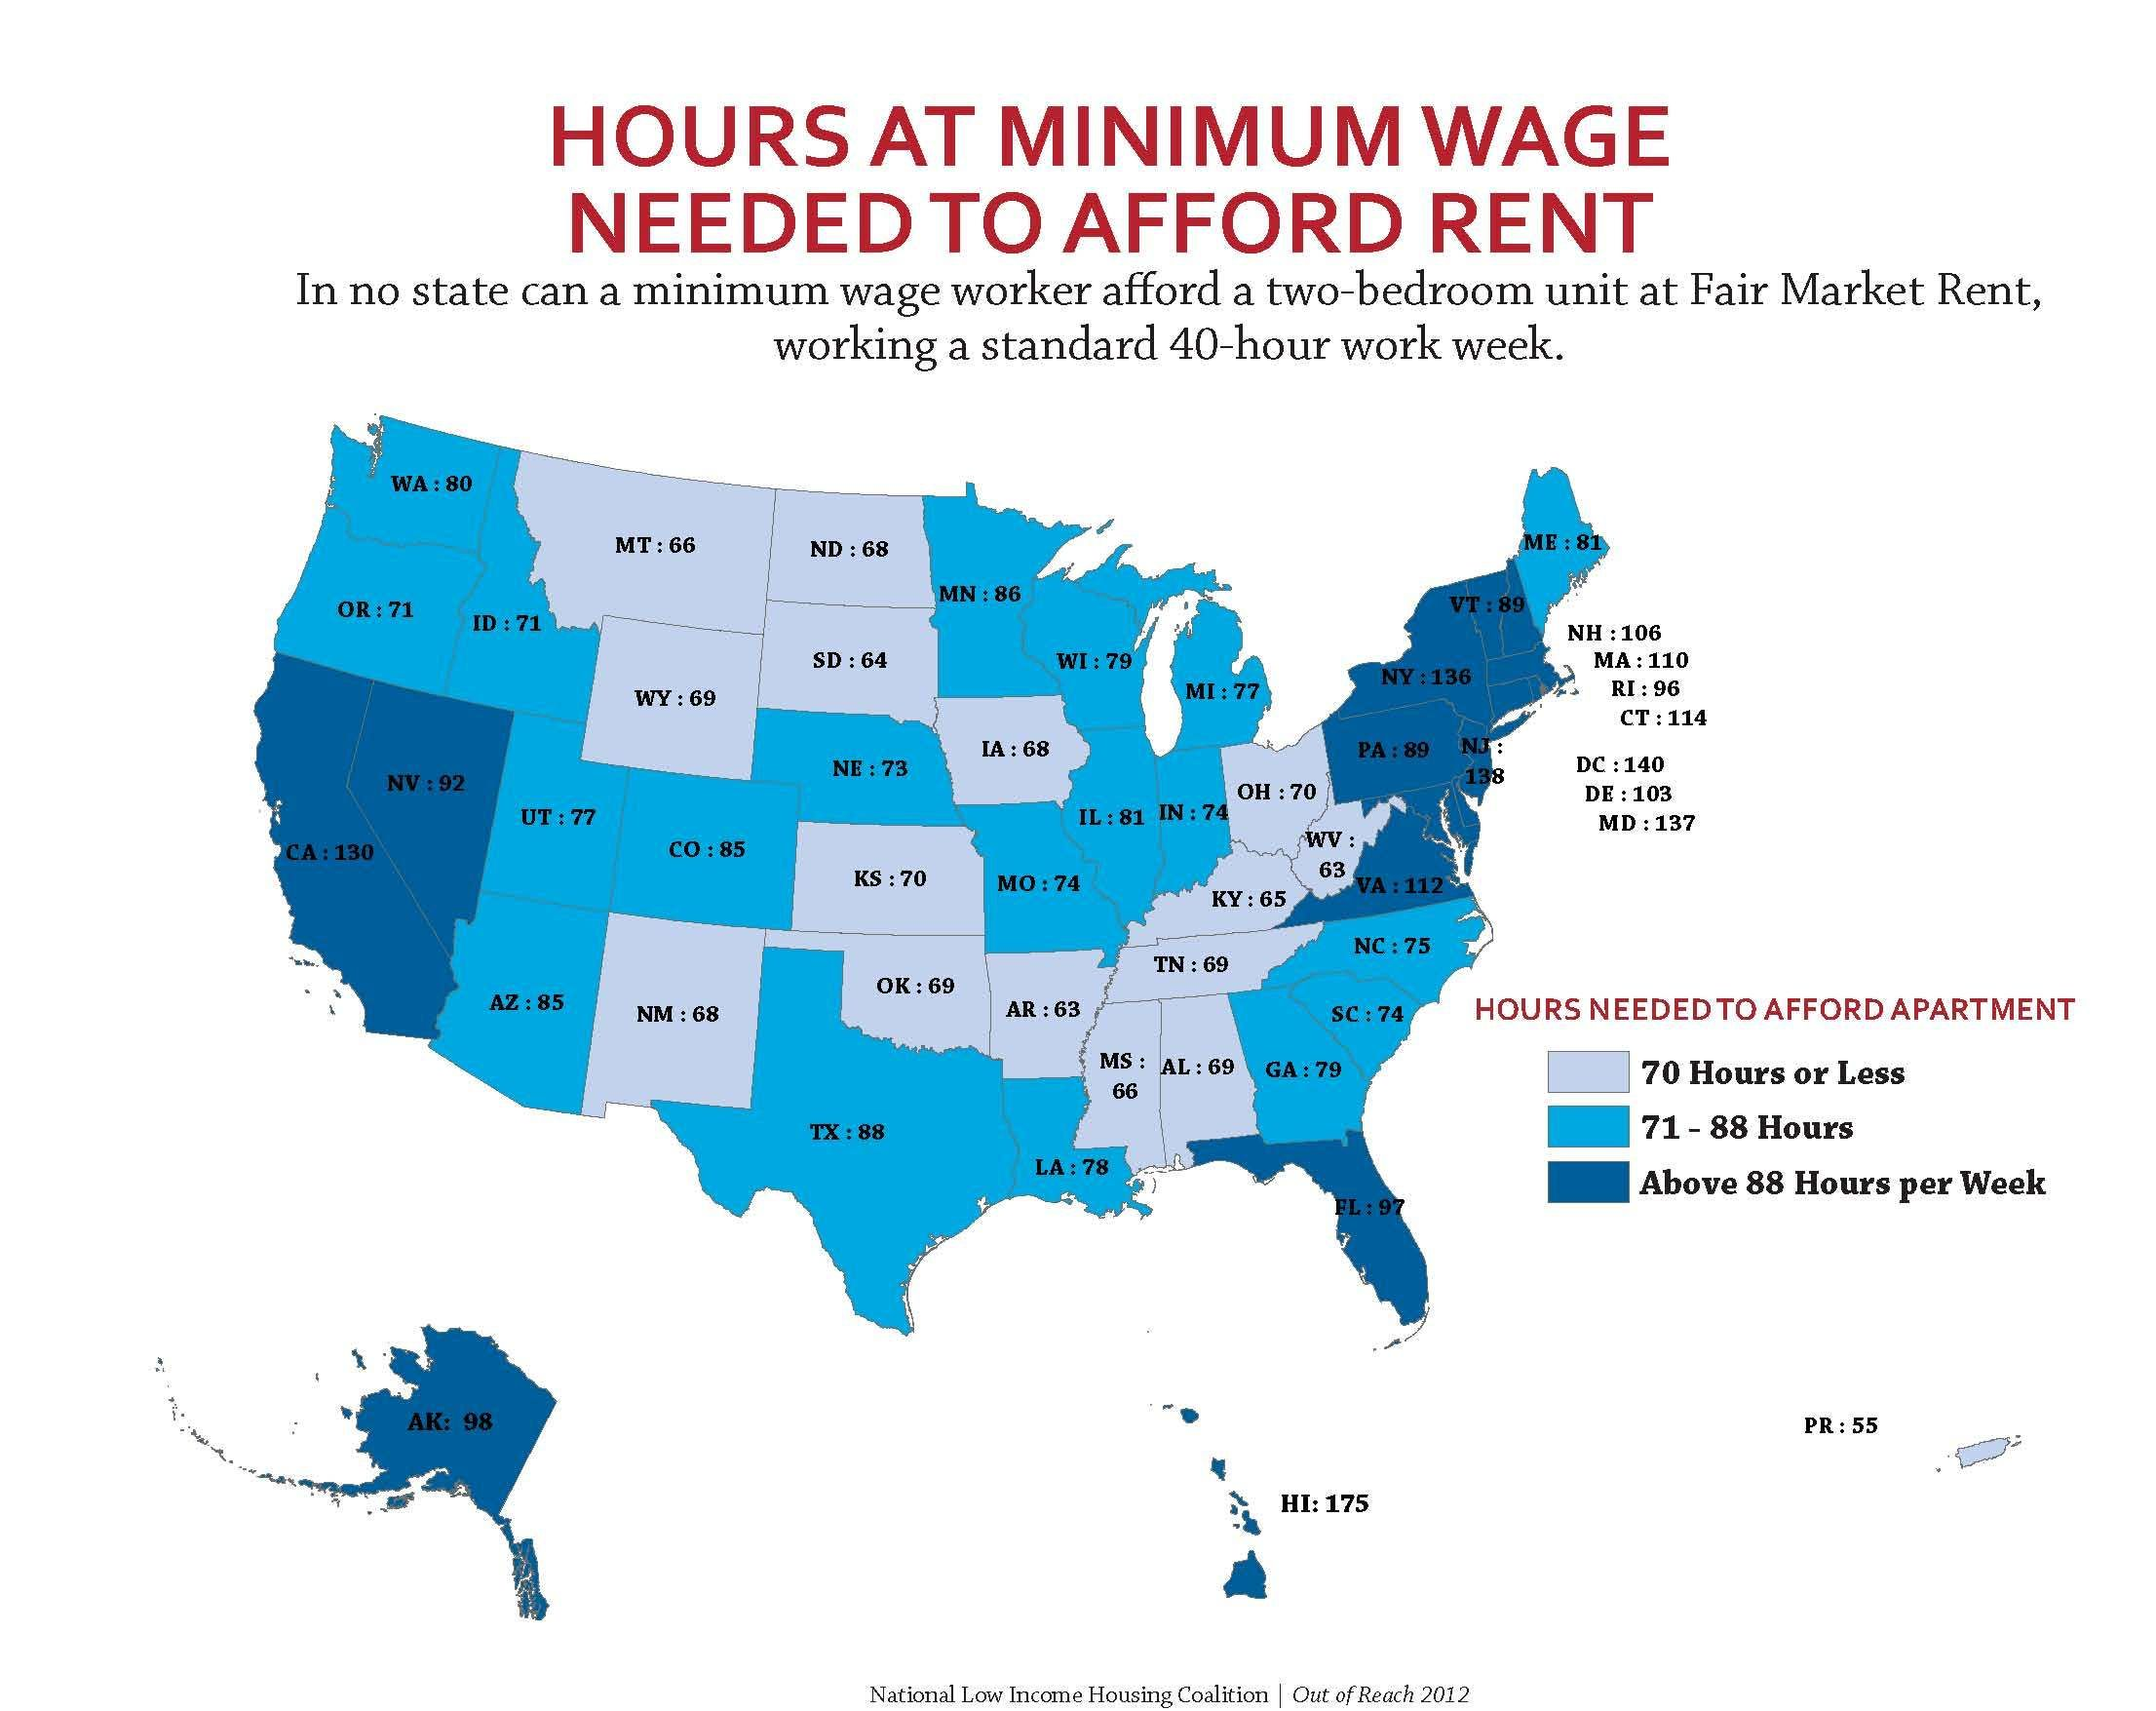 This image shows how many hours per week a minimum wage earner would have to work in each state in order to pay no more than 30% of income for a two bedroom unit at Fair Market Rent.